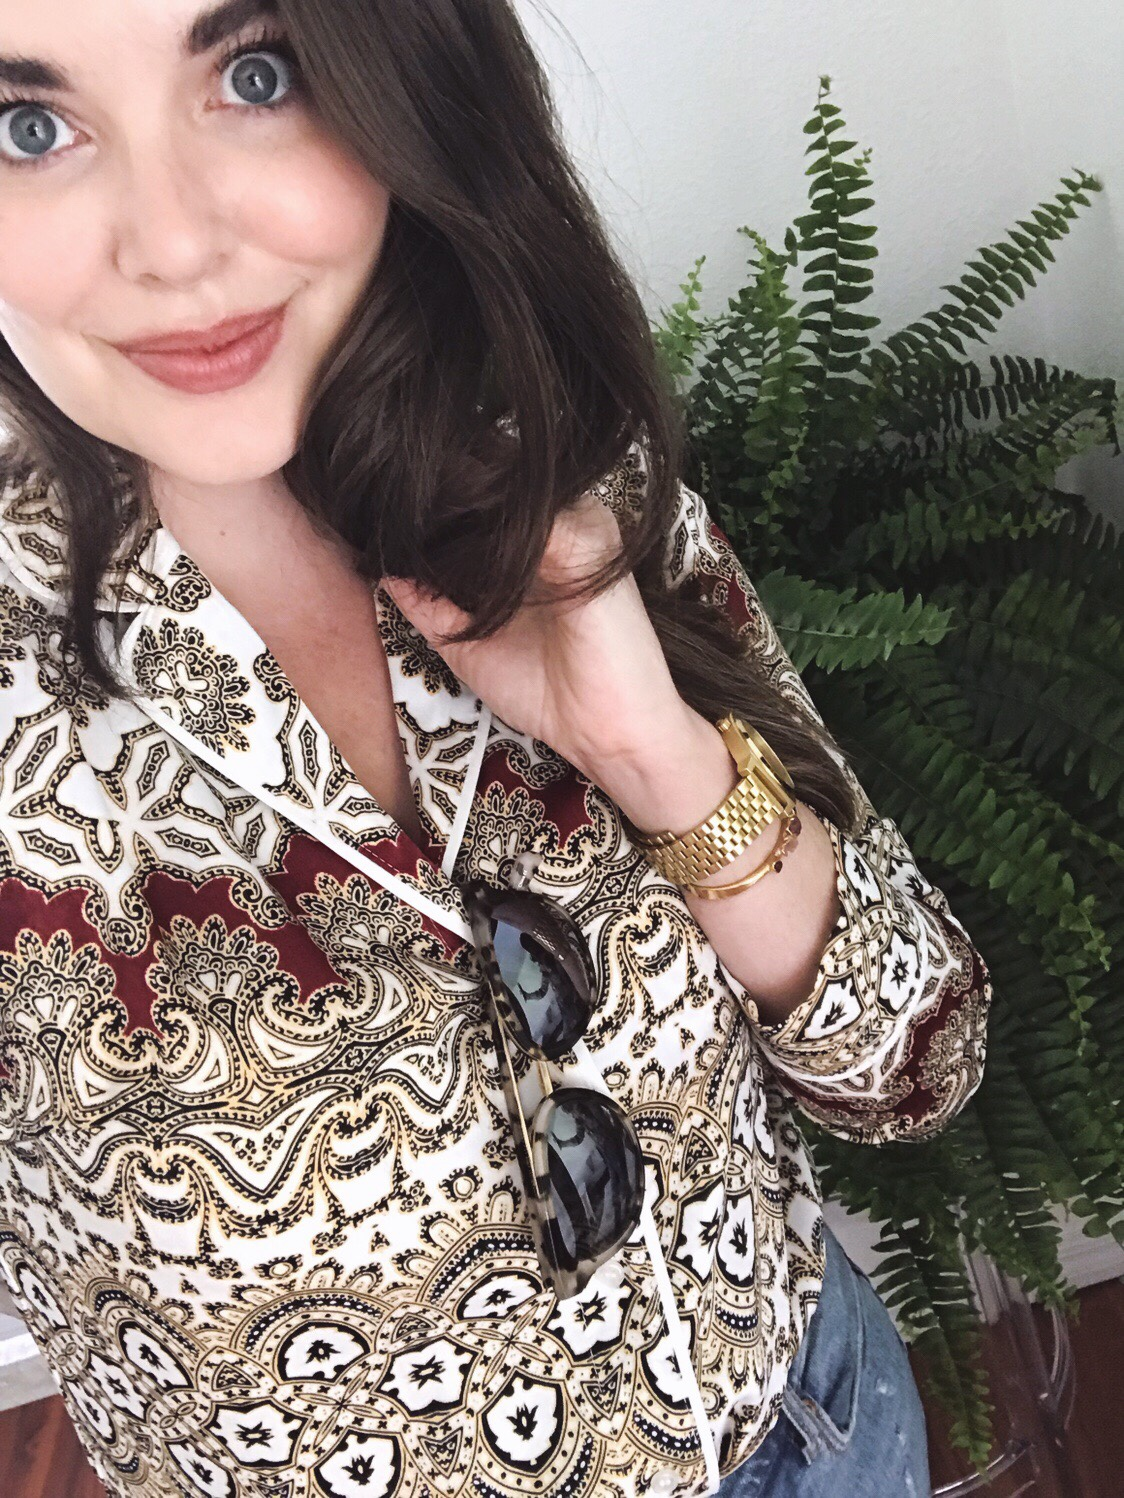 Style blogger wearing pajama style printed blouse by The Limited